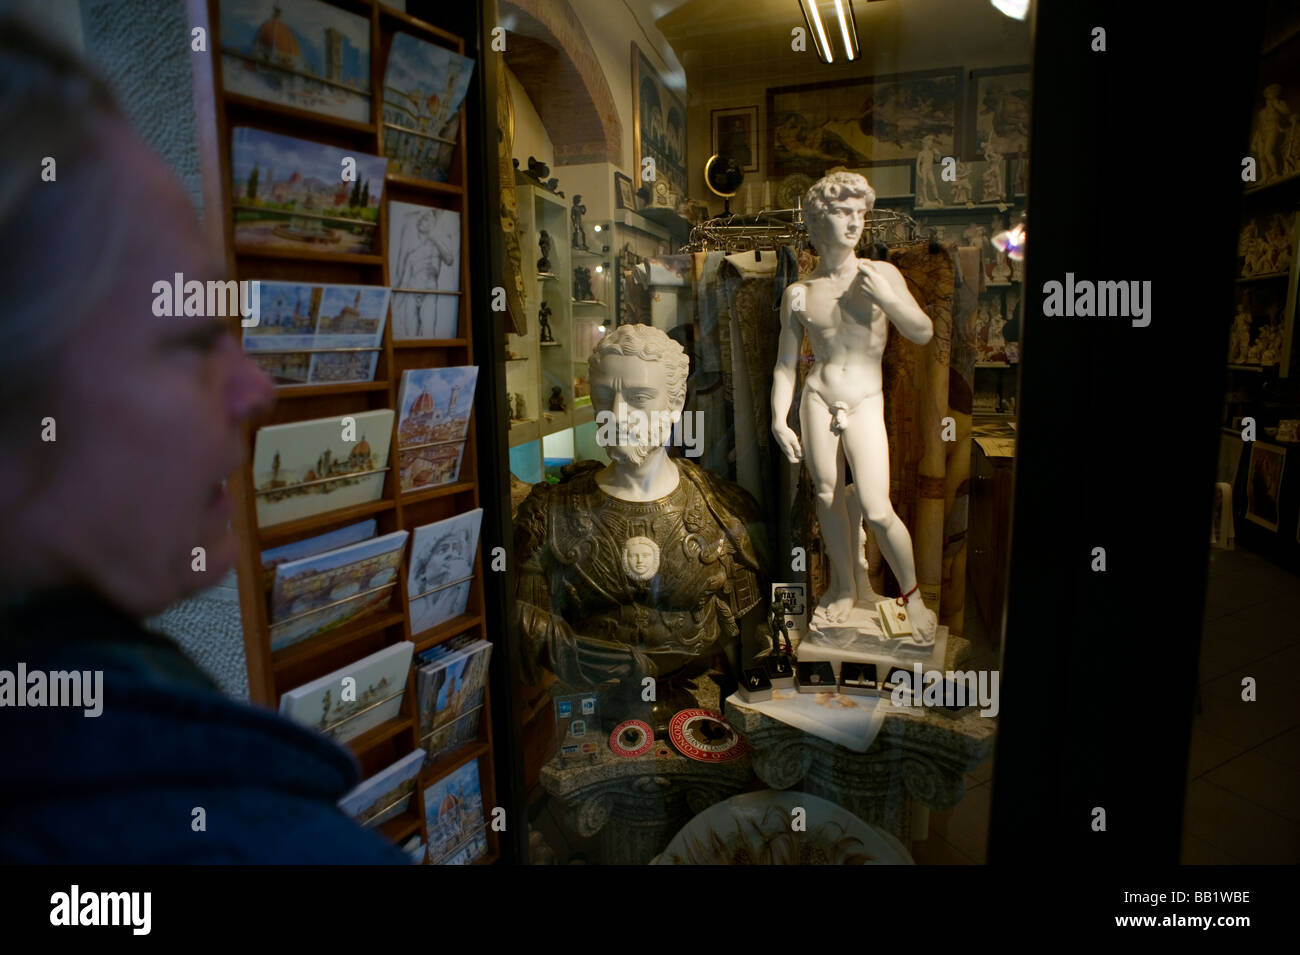 Florence Tuscany Italy The city of the Renaissance Photo shows Tourist shop selling tourist tat of Florence such - Stock Image